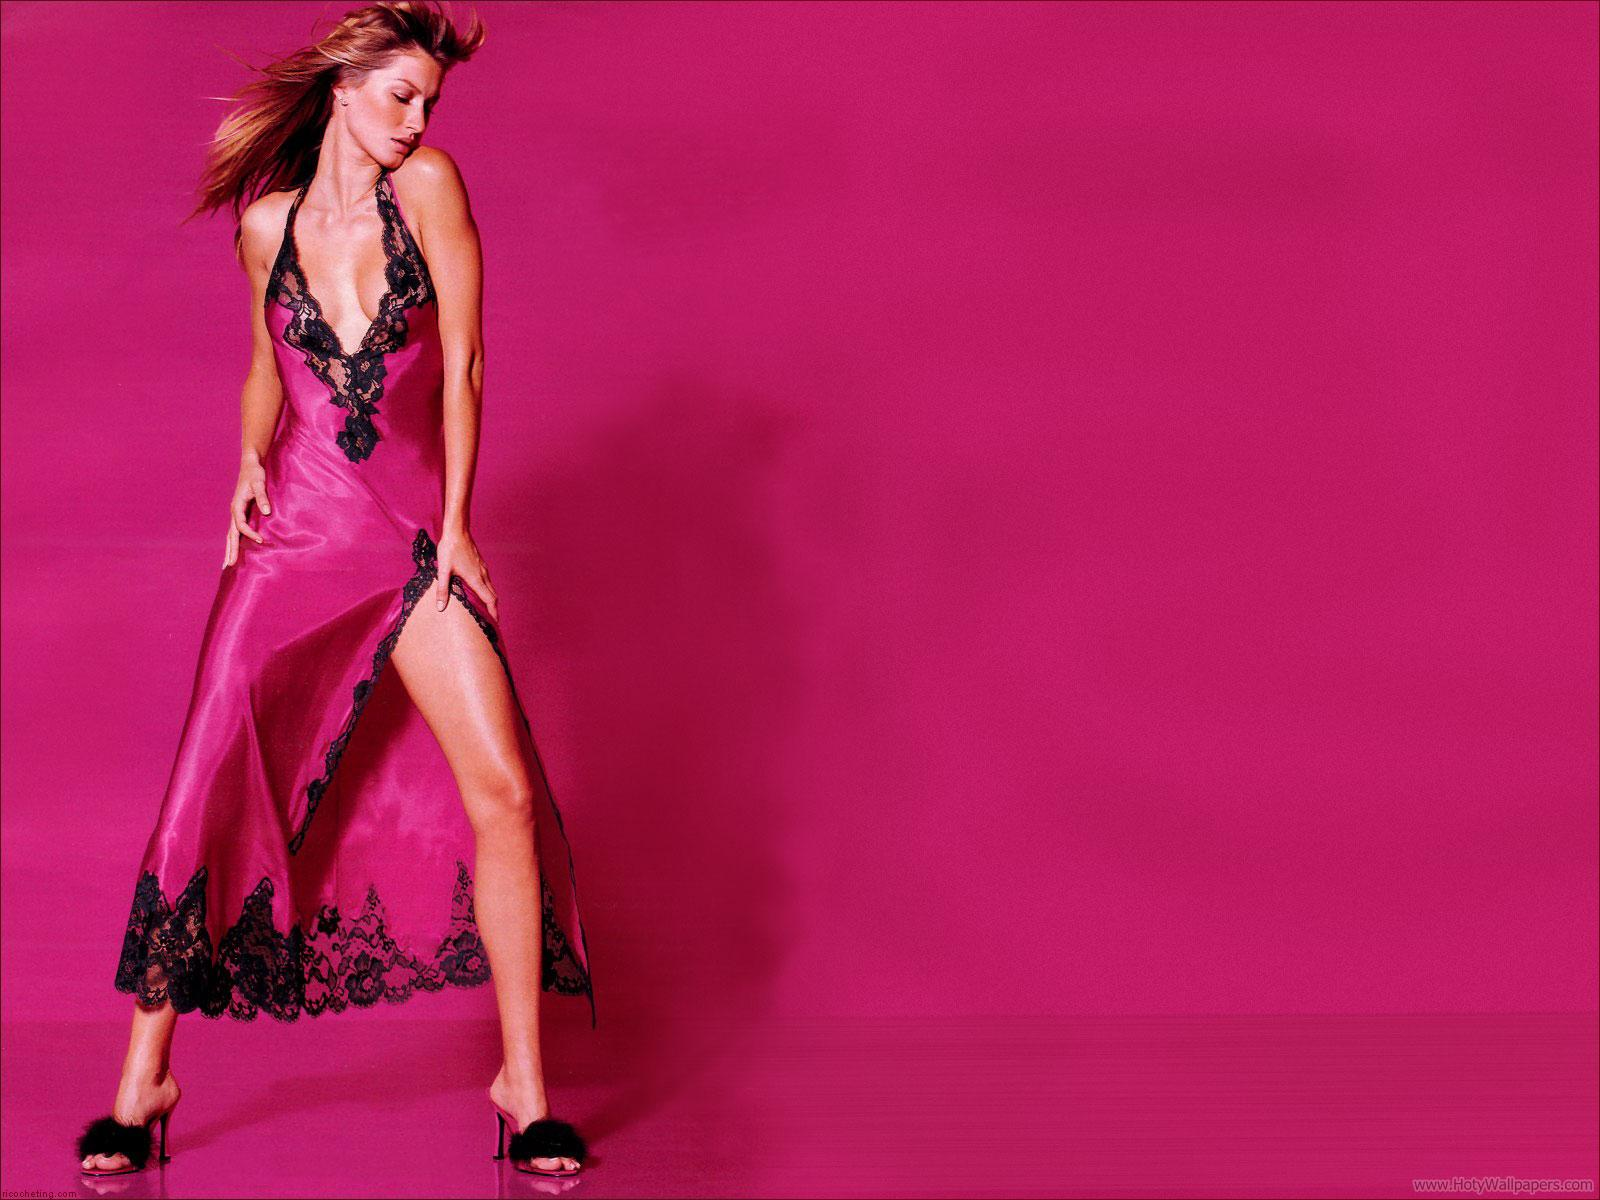 http://2.bp.blogspot.com/-YyuySZ7_pIM/TvxyLb1GxiI/AAAAAAAABOw/DVGYaPx-ctQ/s1600/gisele_bundchen_beautiful_hd_wallpaper-12.jpg